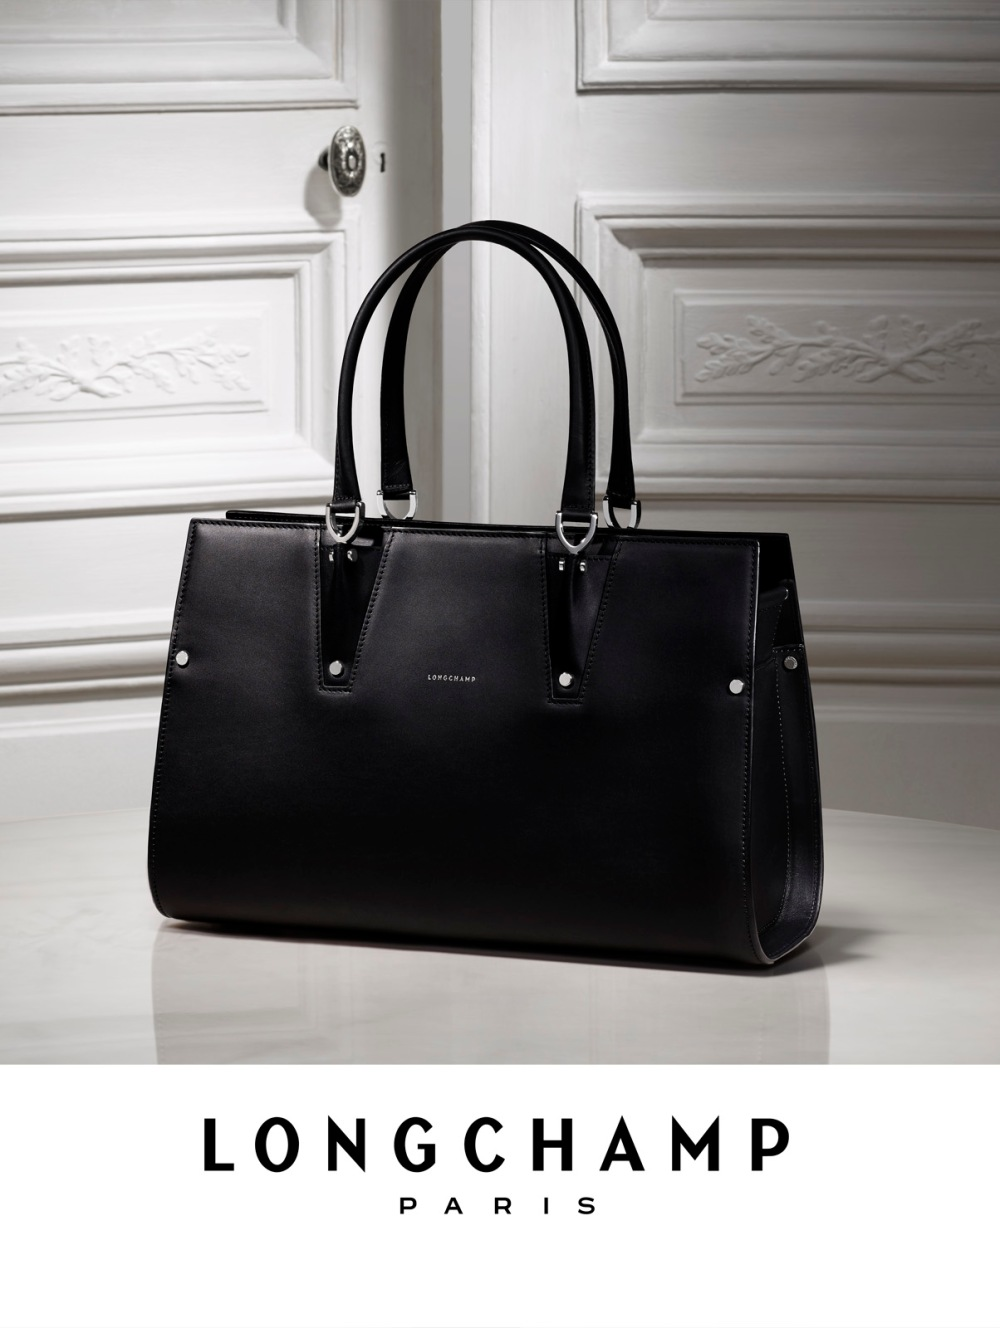 roberto-badin-for-longchamp-advertising-campaign-photography-1